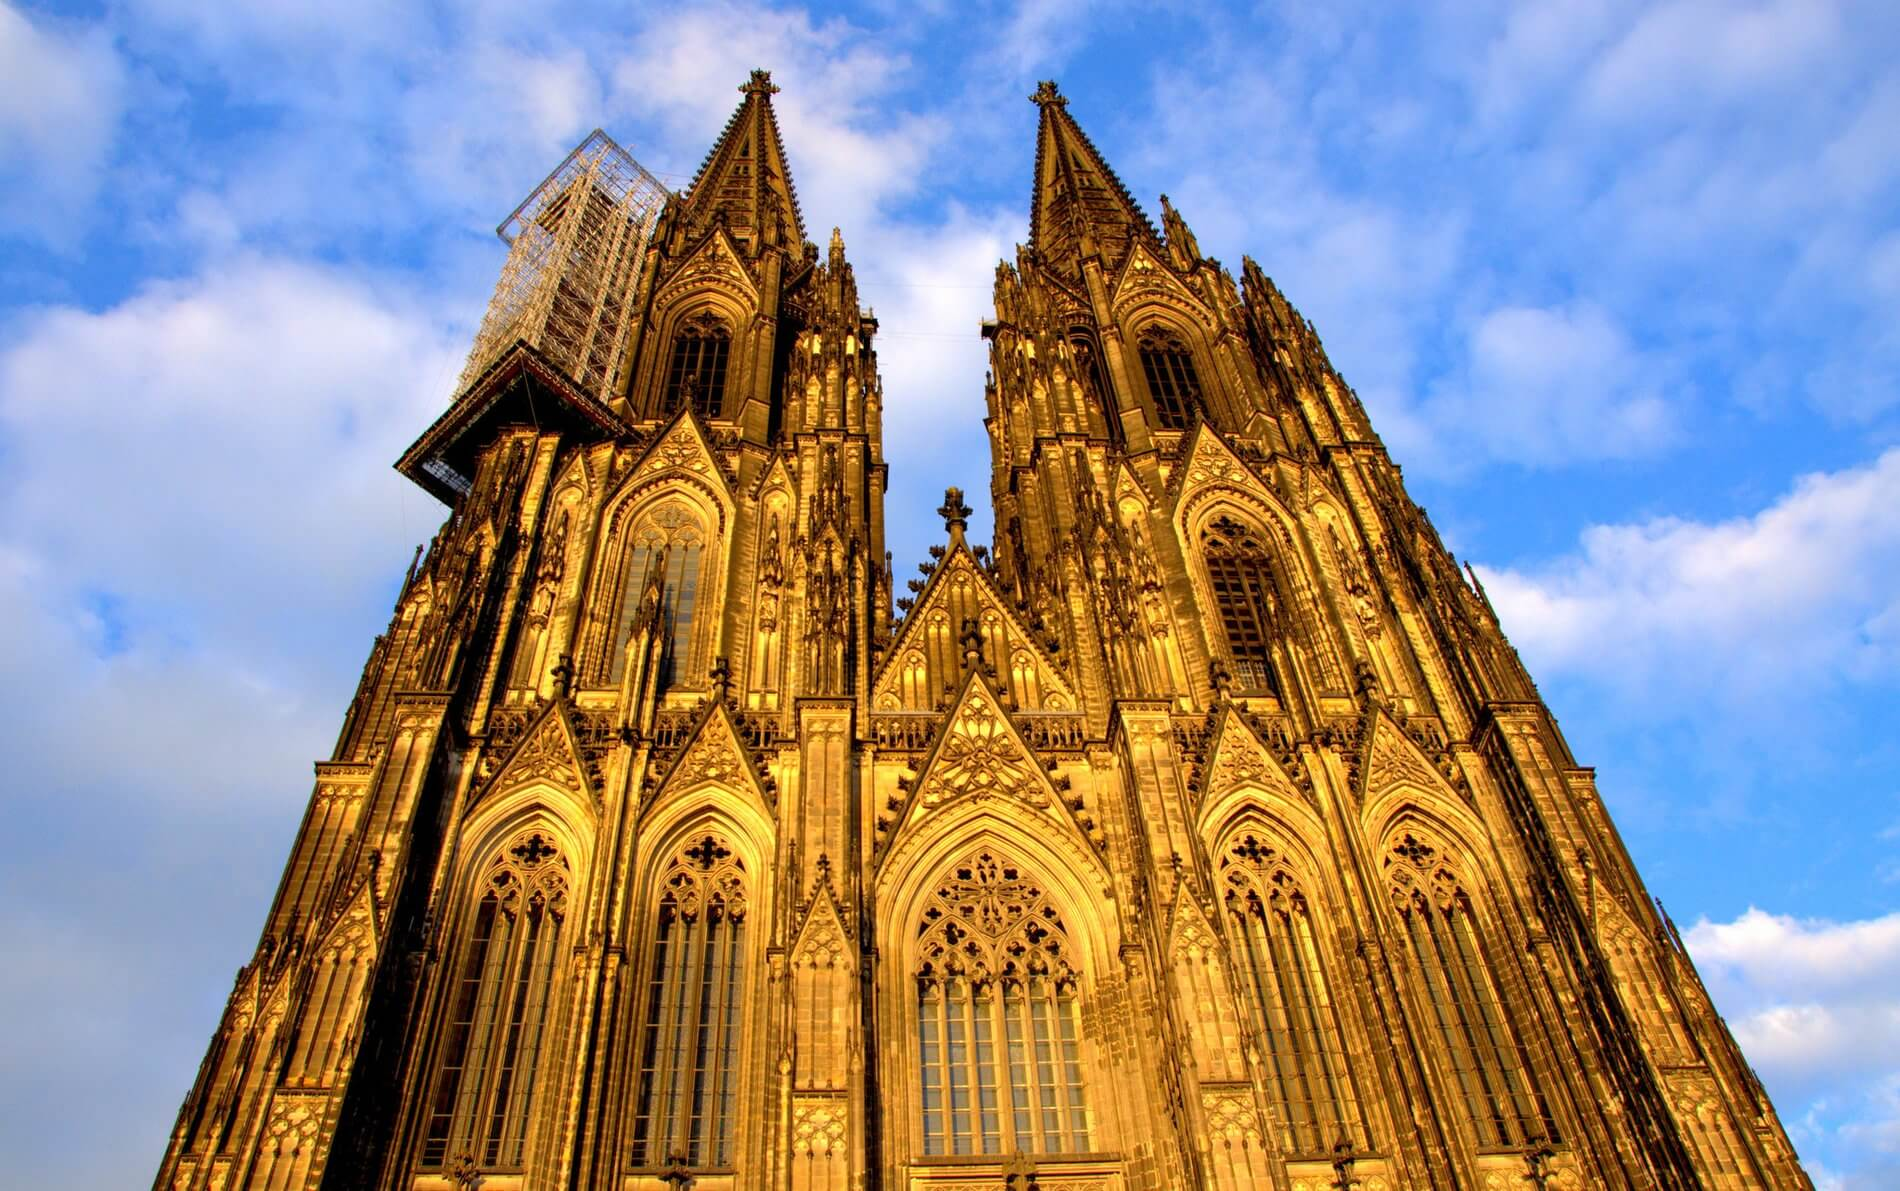 Kölsch and Cathedrals in Cologne